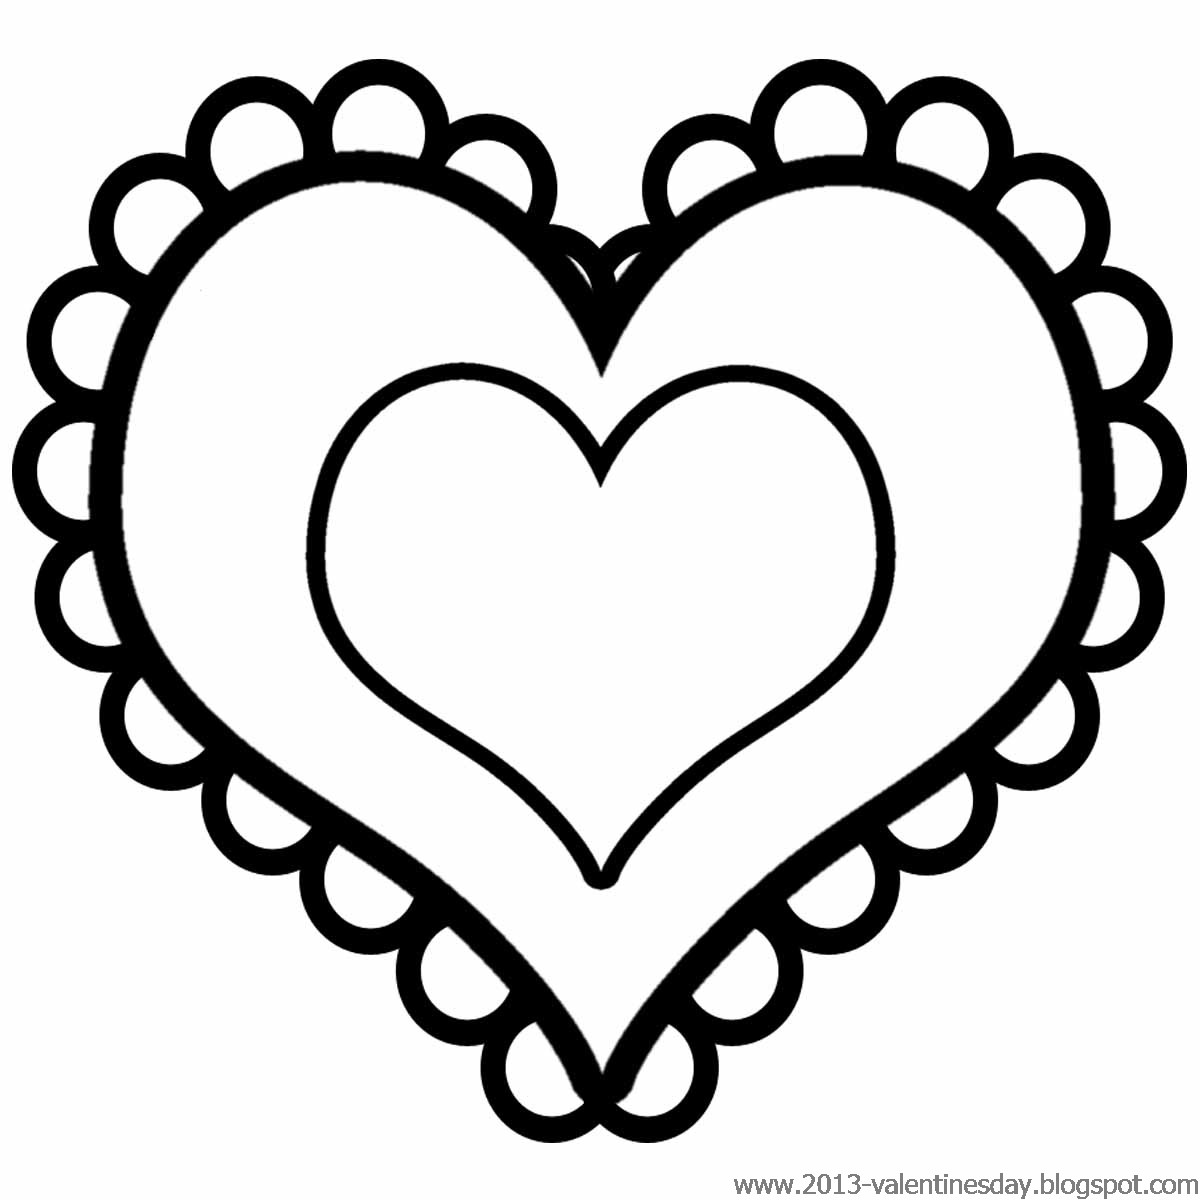 Heart black and white heart clipart black and white heart.